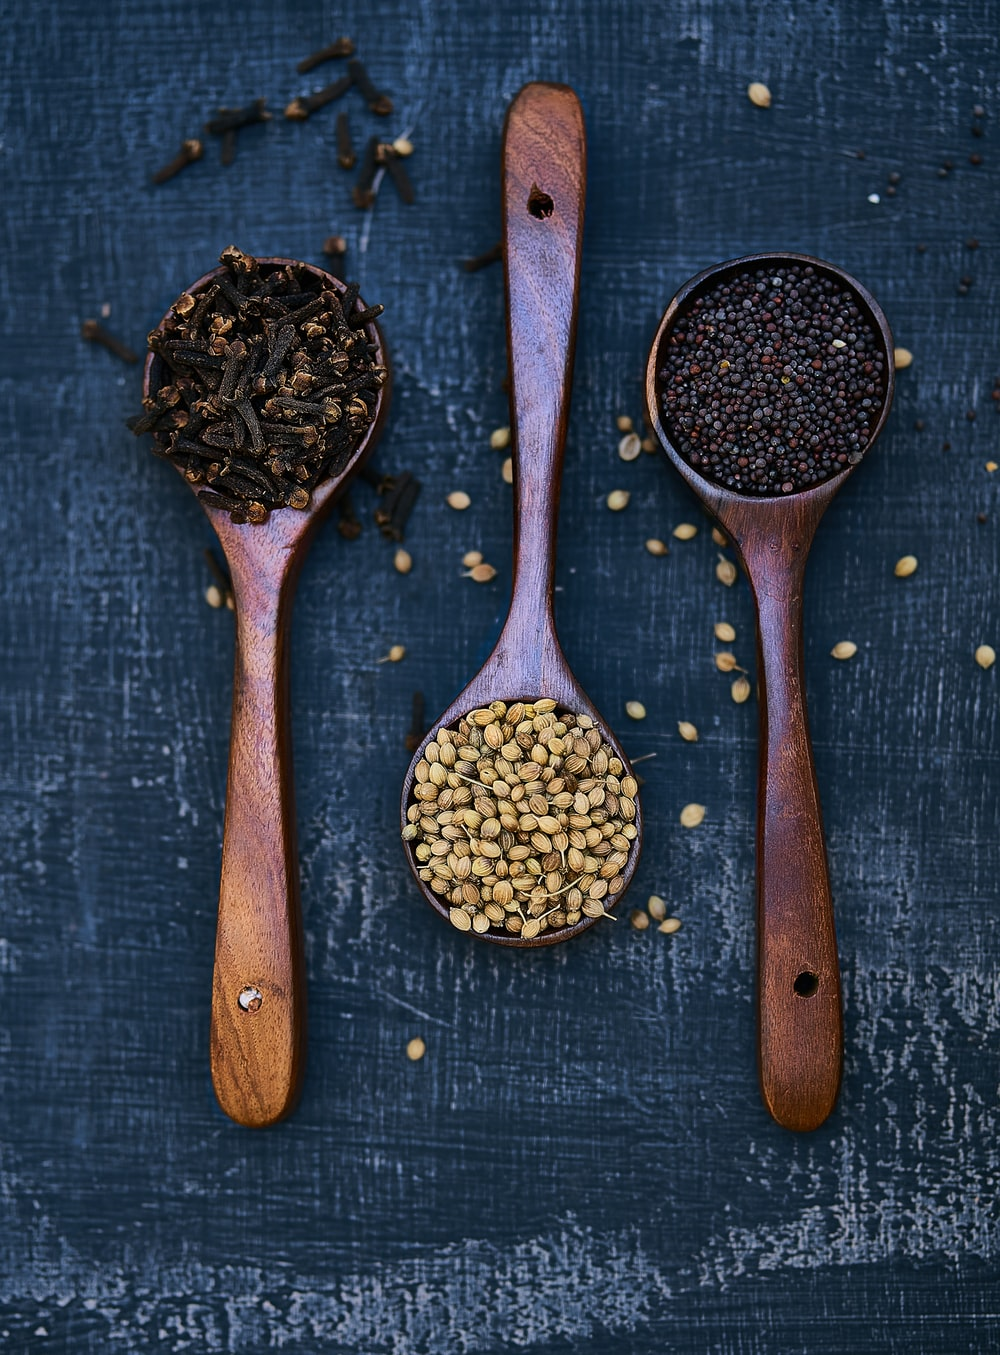 three spoons of spices